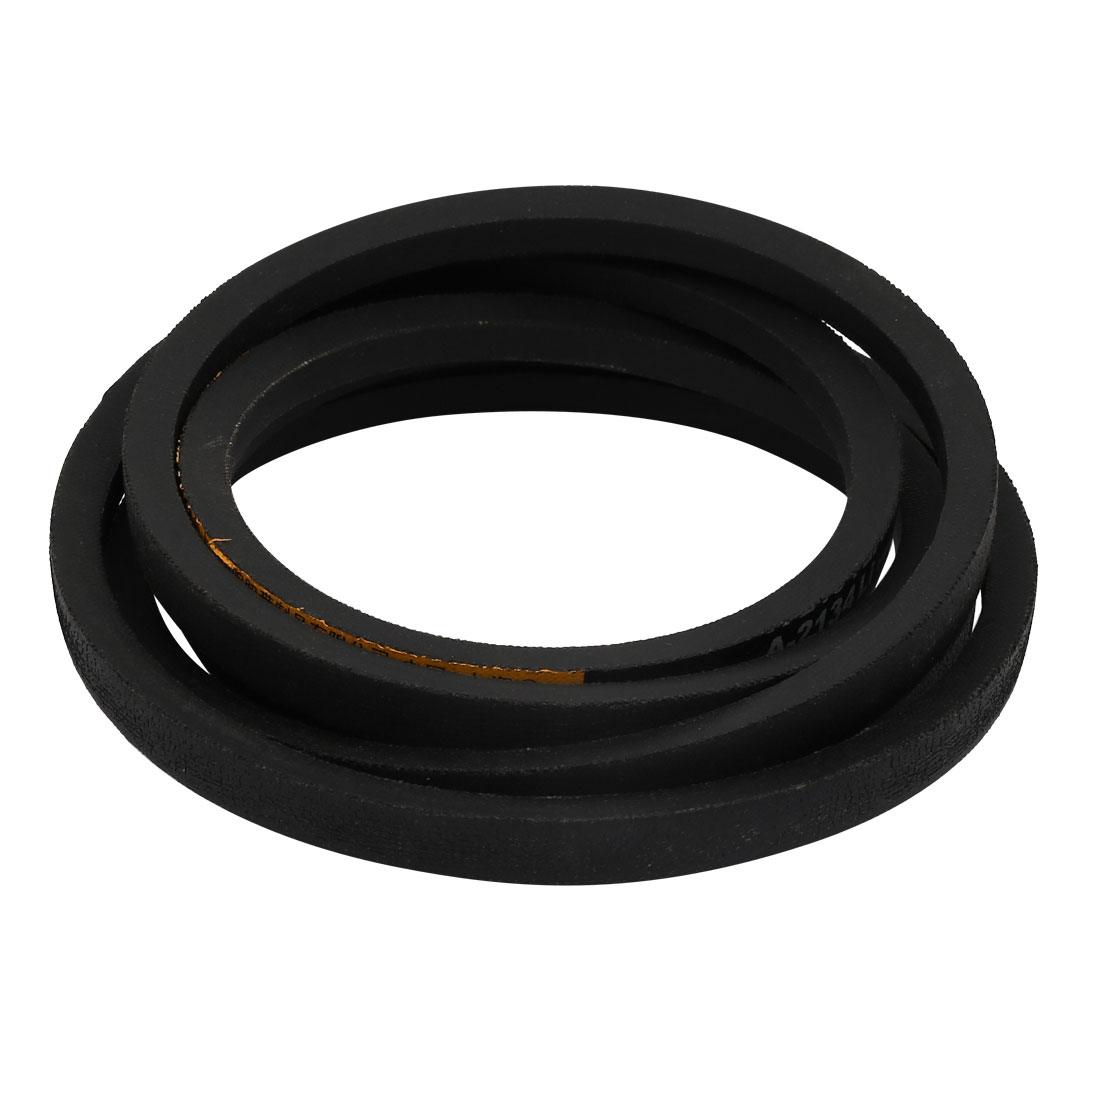 A2134 13mm Width 8mm Thickness Rubber High Strength Transmission Drive V-Belt